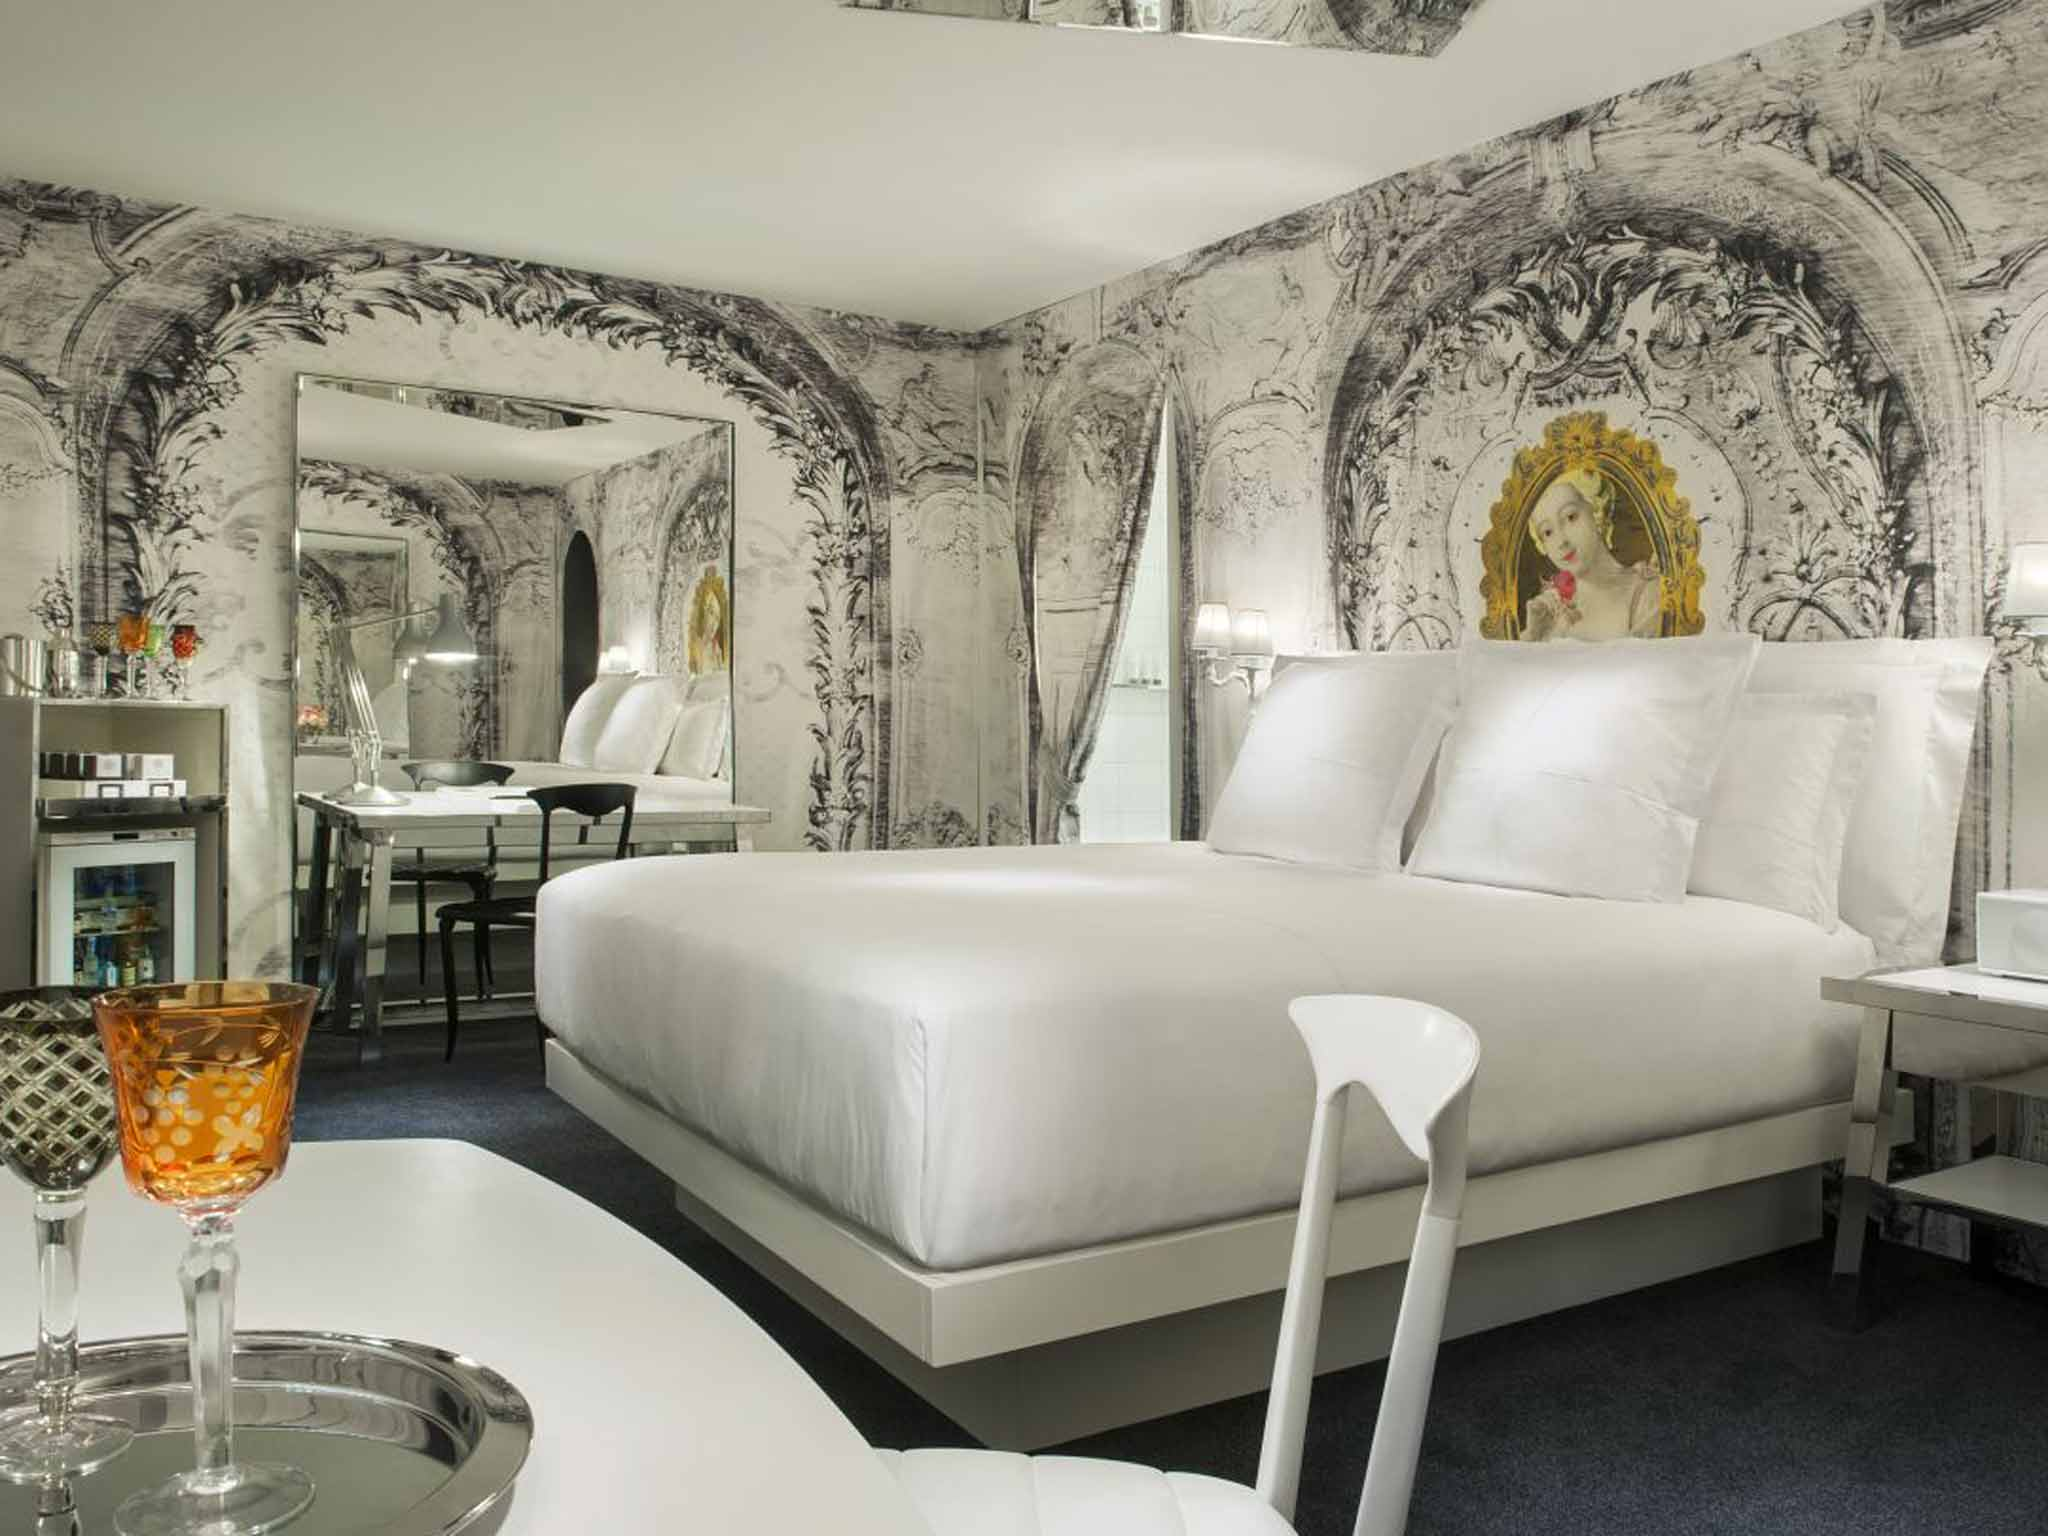 SLS Las Vegas: Starck bedrooms in the badlands of the Strip | Hotels | Travel | The Independent